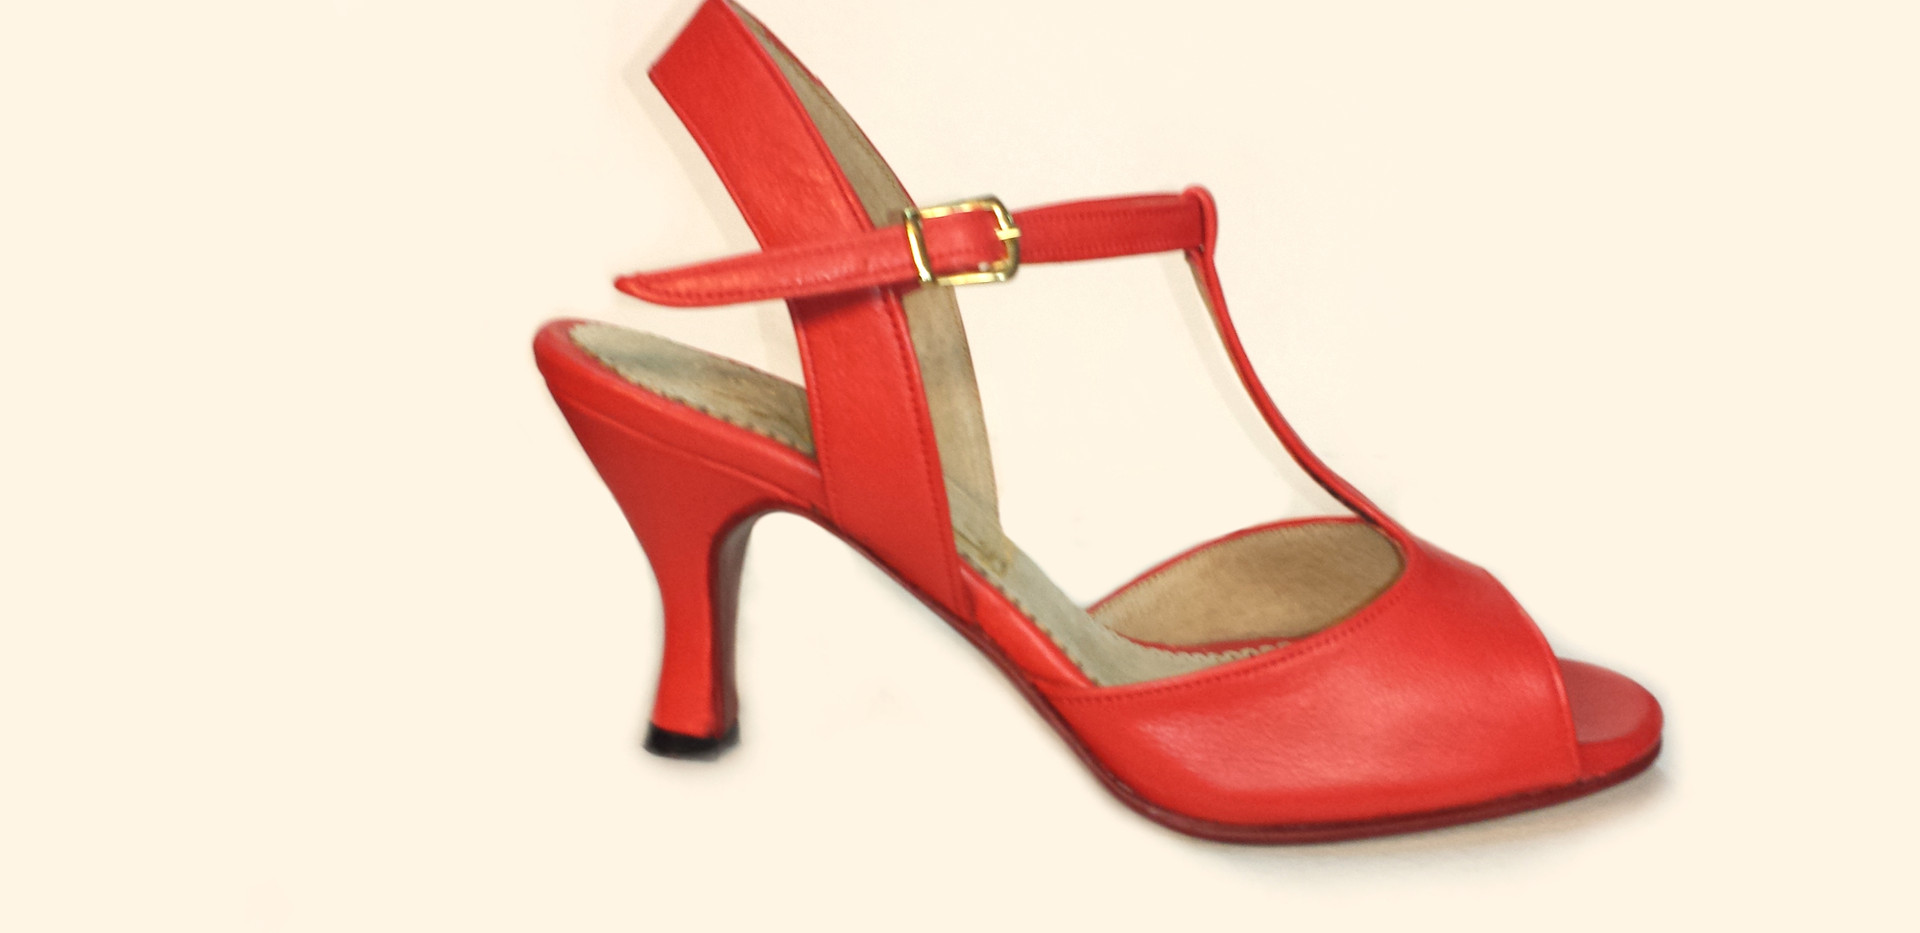 G&G Woman Red Leather